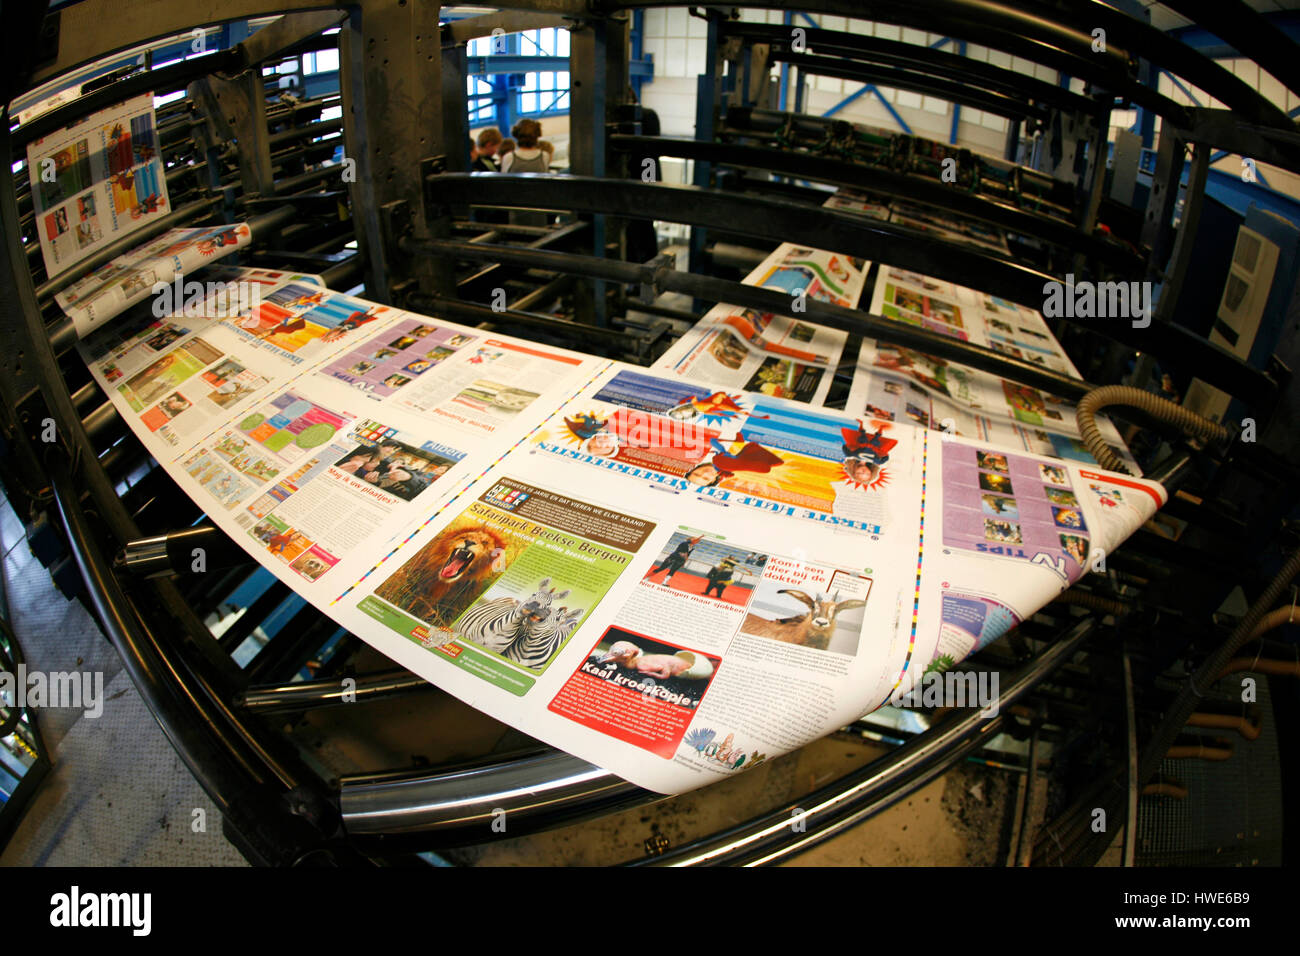 offset printing press - Stock Image